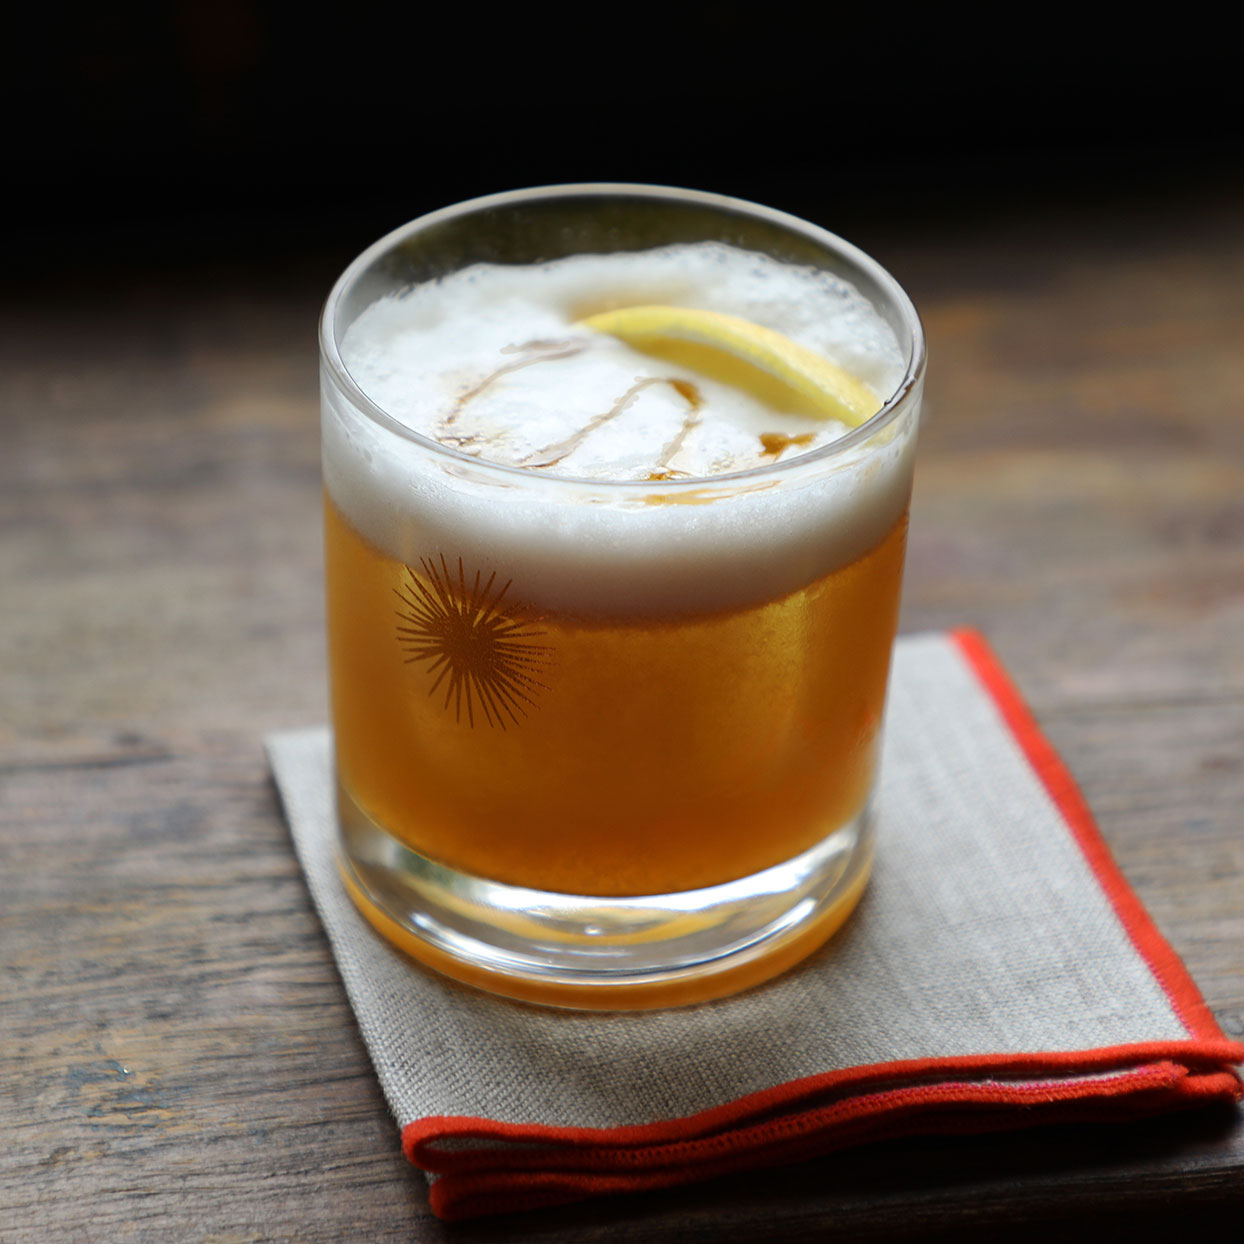 If you're looking for an easy happy hour recipe, but feeling a little limited on ingredients, we've got a bit of good news: you don't have to have a fully stocked bar to turn out a delicious whiskey sour. Hopefully, you've got a little whiskey or bourbon lying around, a bit of maple syrup and fresh citrus. And if you're really looking to elevate your beverage, add some aquafaba to the mix. While not necessary, it stands in for the traditional egg white to create a lovely layer of foam at the top. Source: EatingWell.com, April 2020